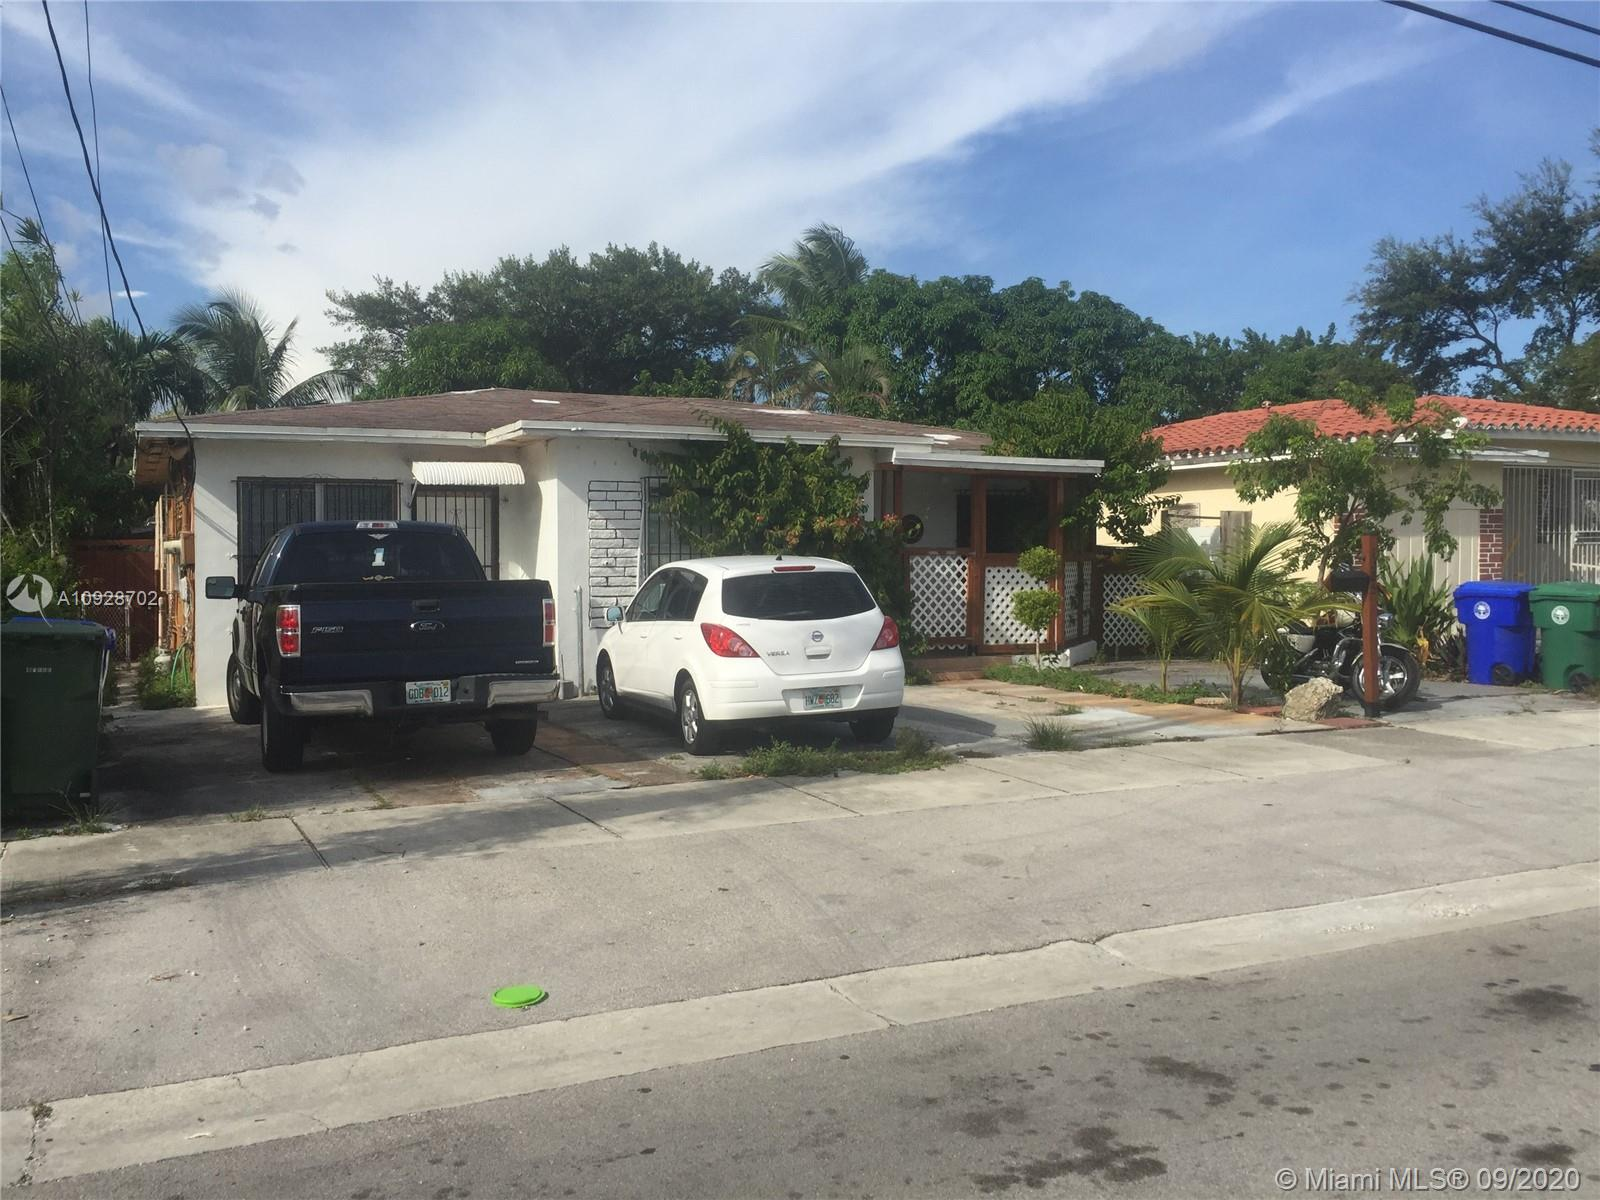 GREAT INVESTMENT OPPORTUNITY !!! LEGAL DUPLEX ON A MULTIFAMILY LAND. IT HAS 2 BEDROOMS /1 BATH, 1 BEDROOM /1 BATH AND AN EFFICIENCY. PRIME LOCATION. CERAMIC TILES, BIG PATIO.